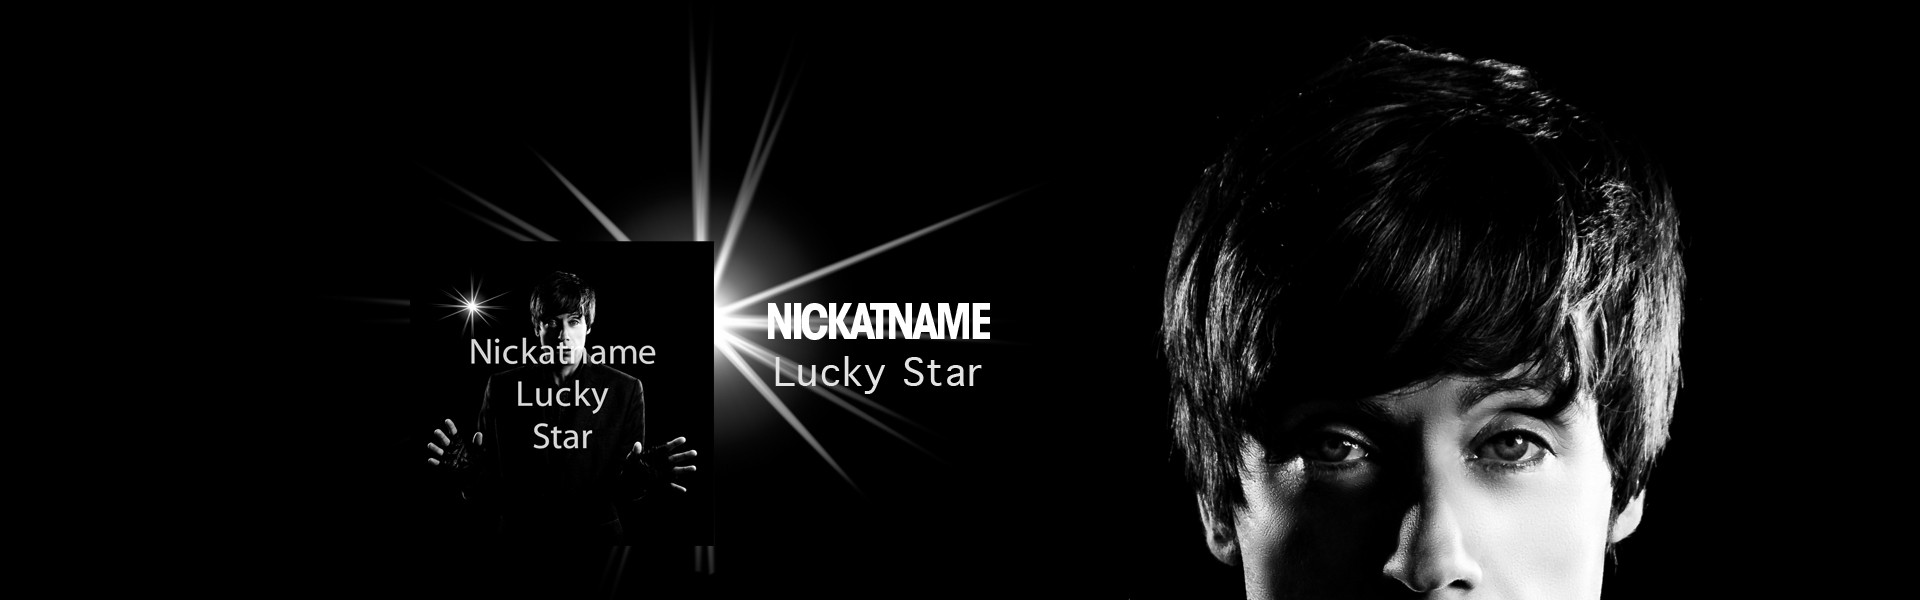 lucky star by nickatname